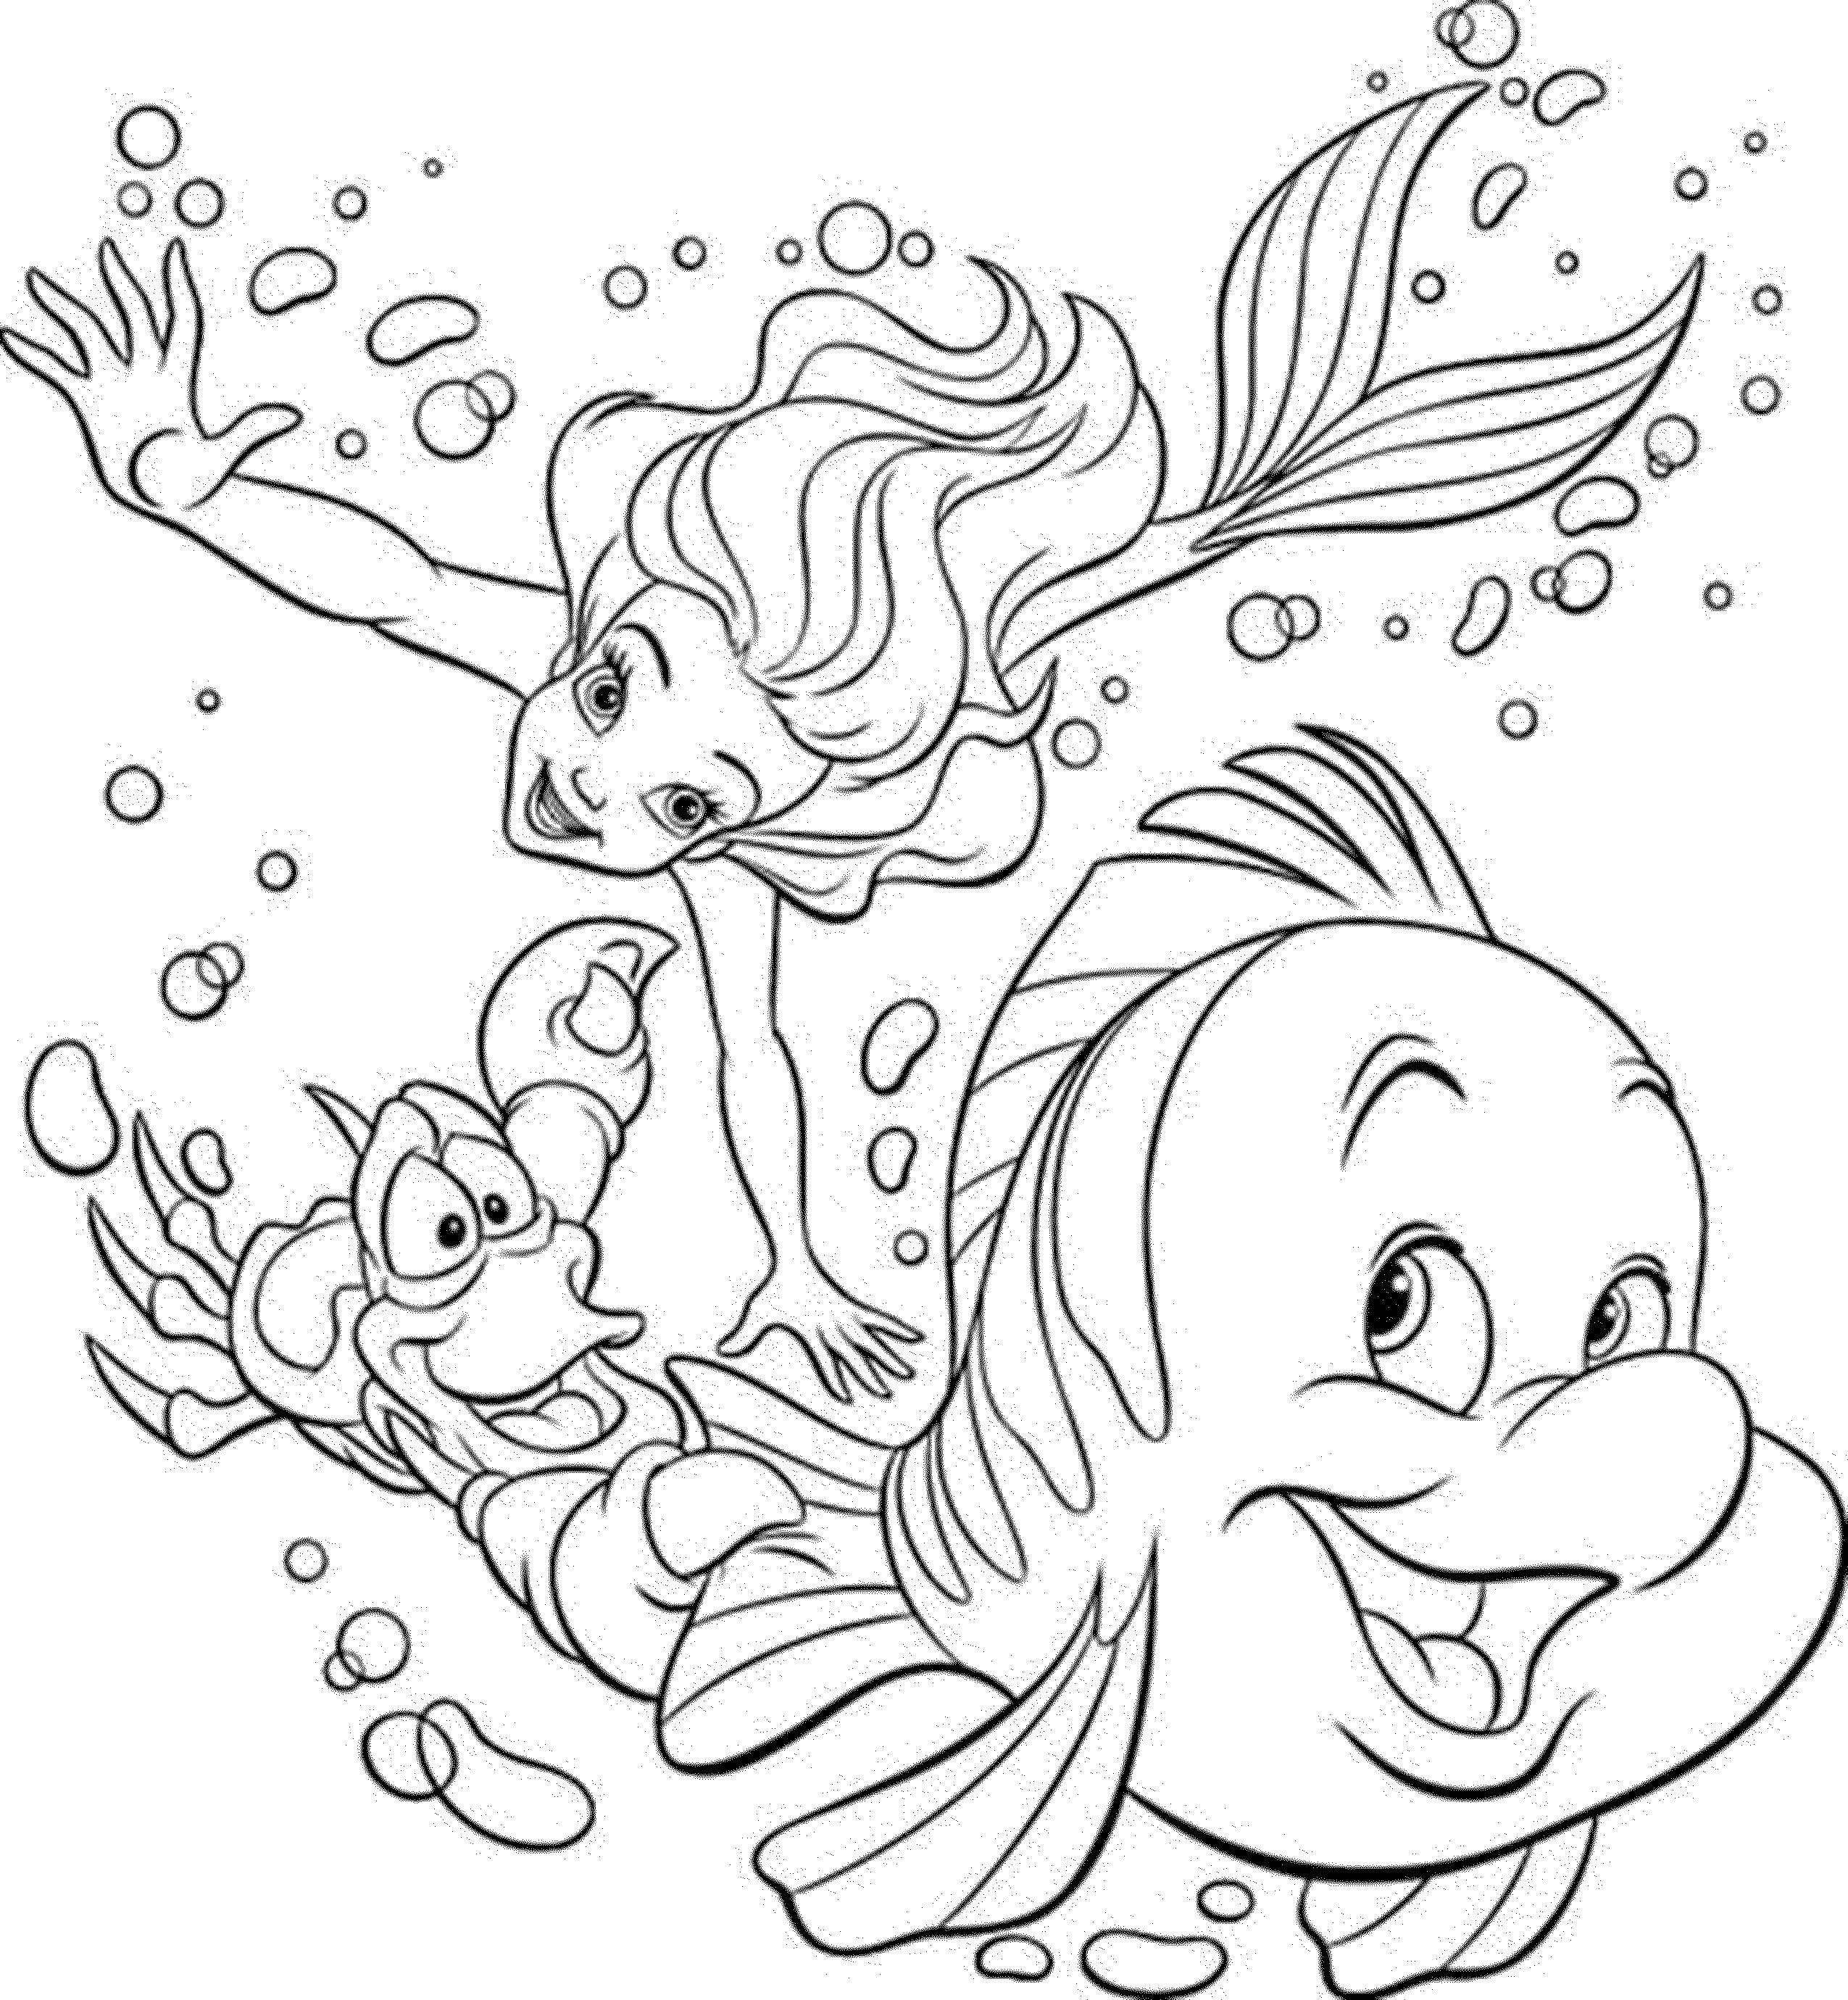 Easy Printable Princess Coloring Pages Disney coloring